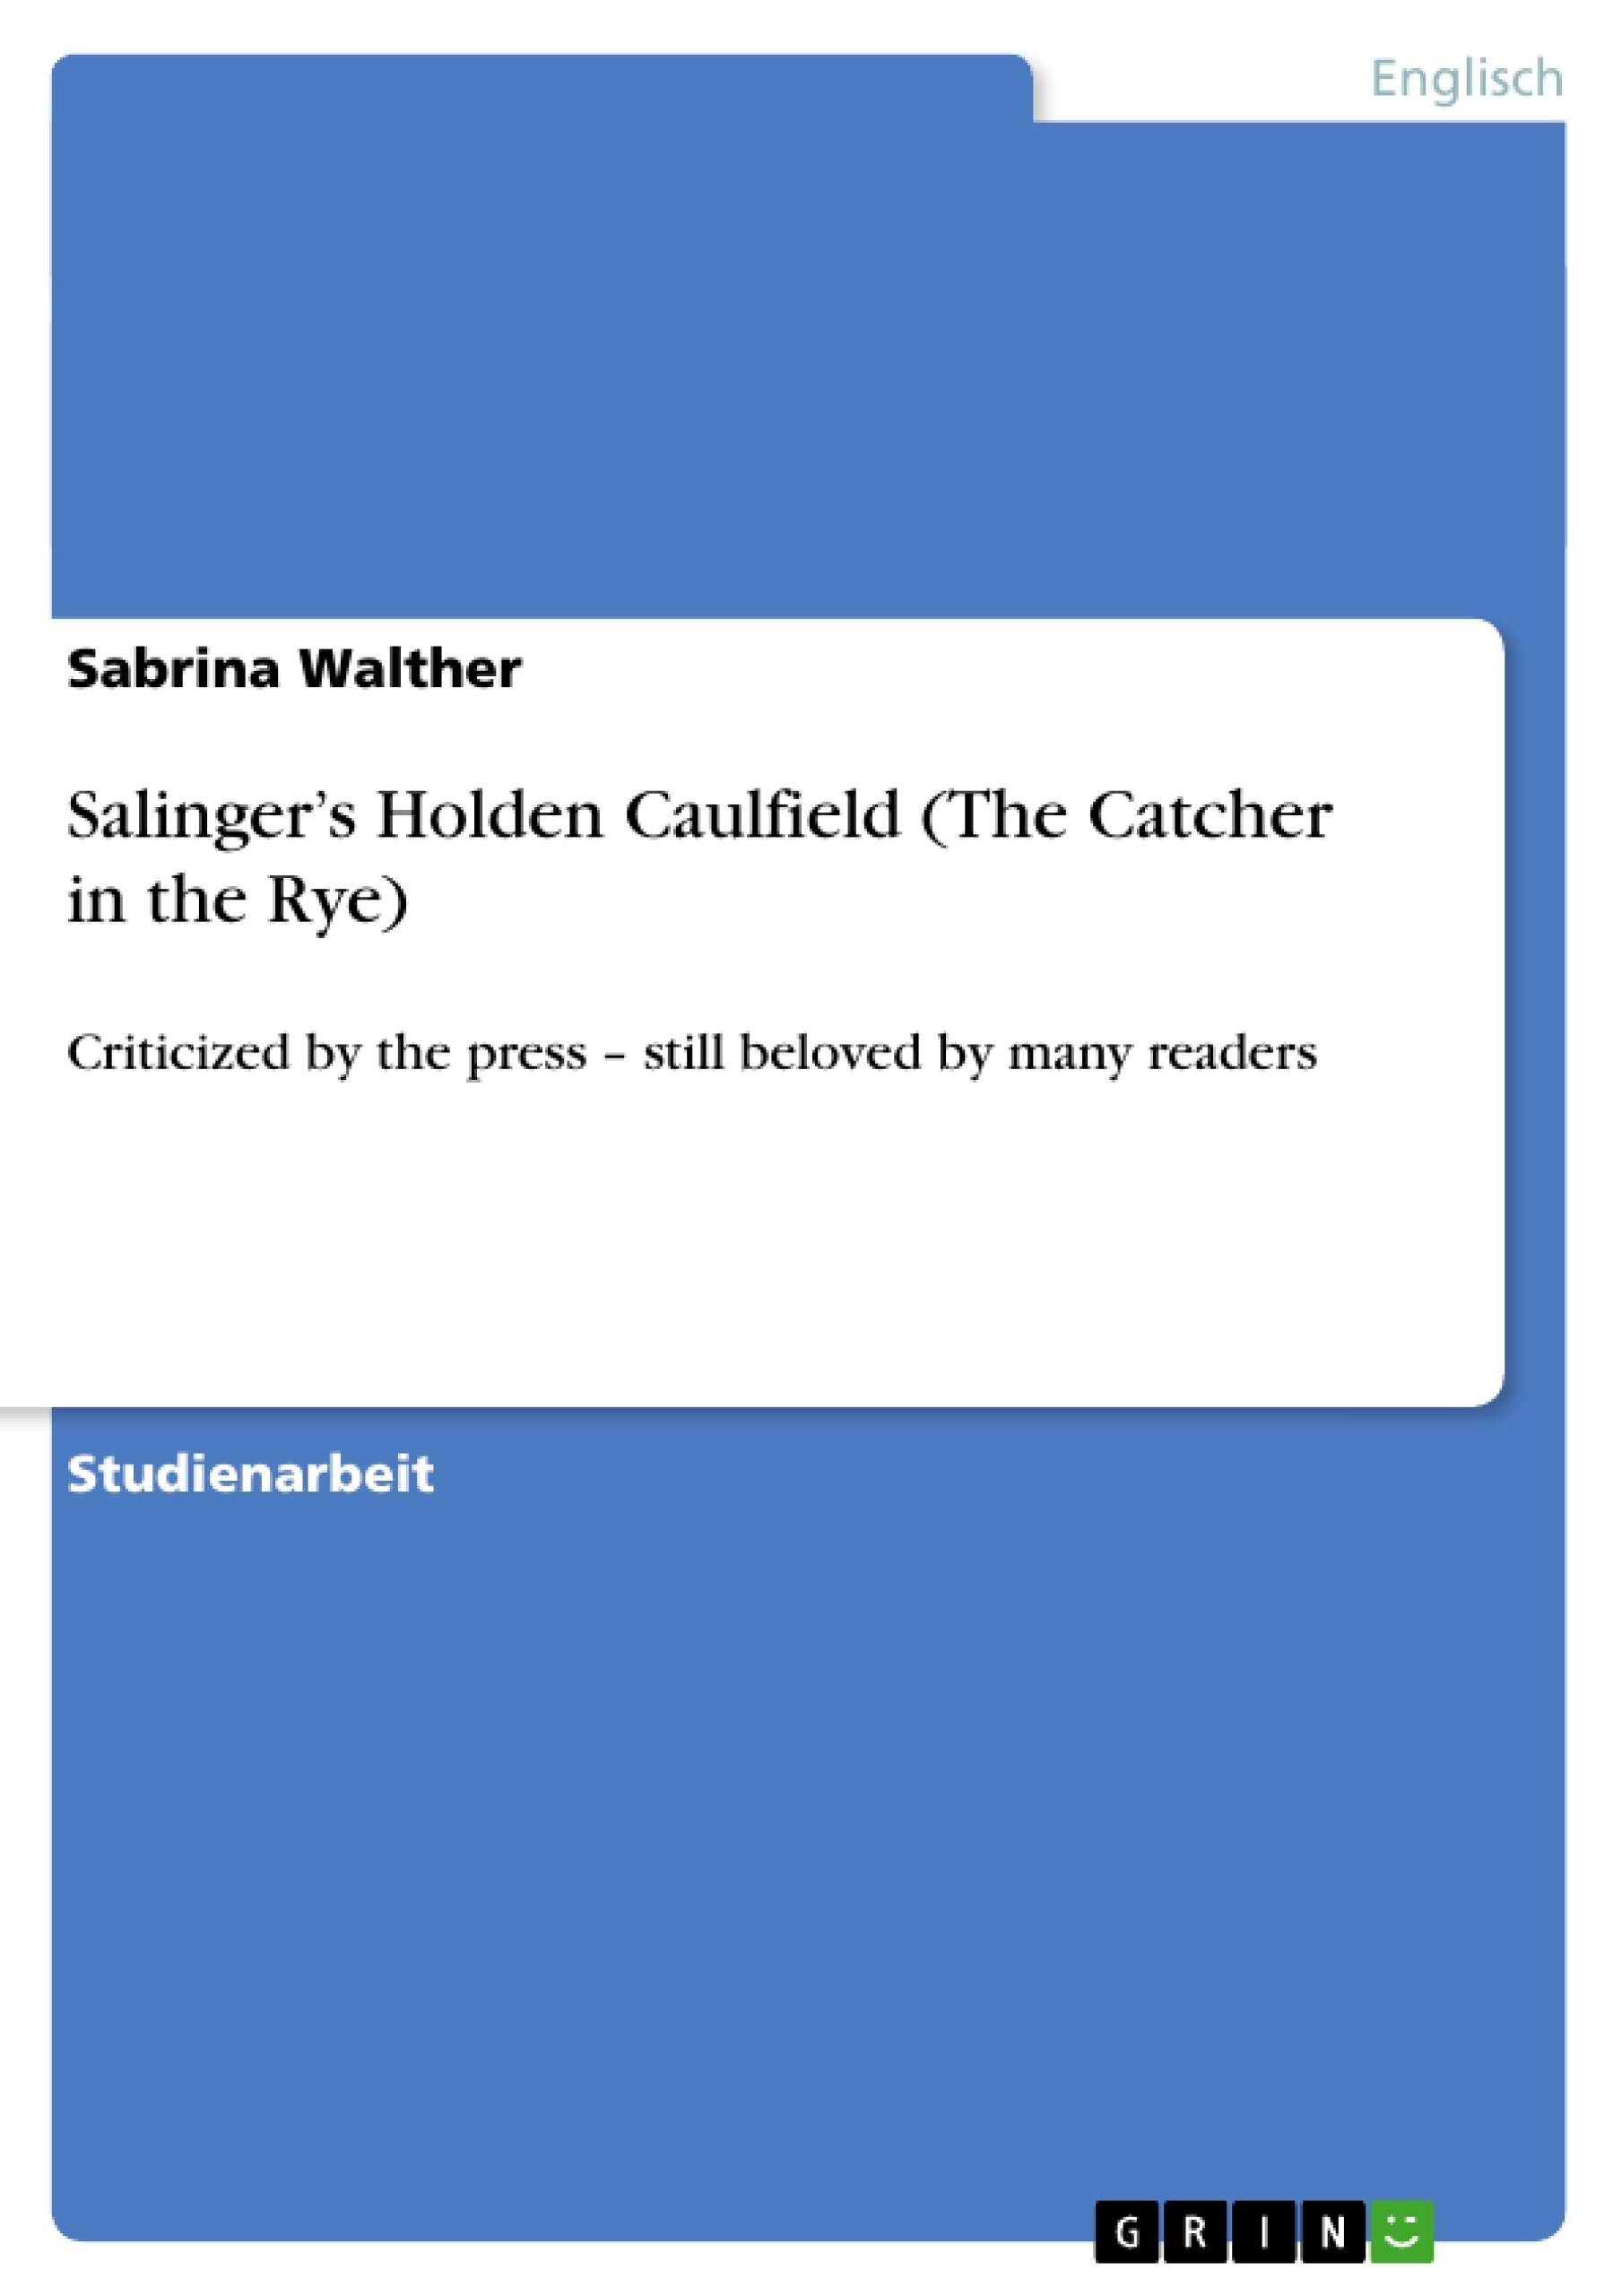 The common experiences of american youth in jd salingers the catcher in the rye